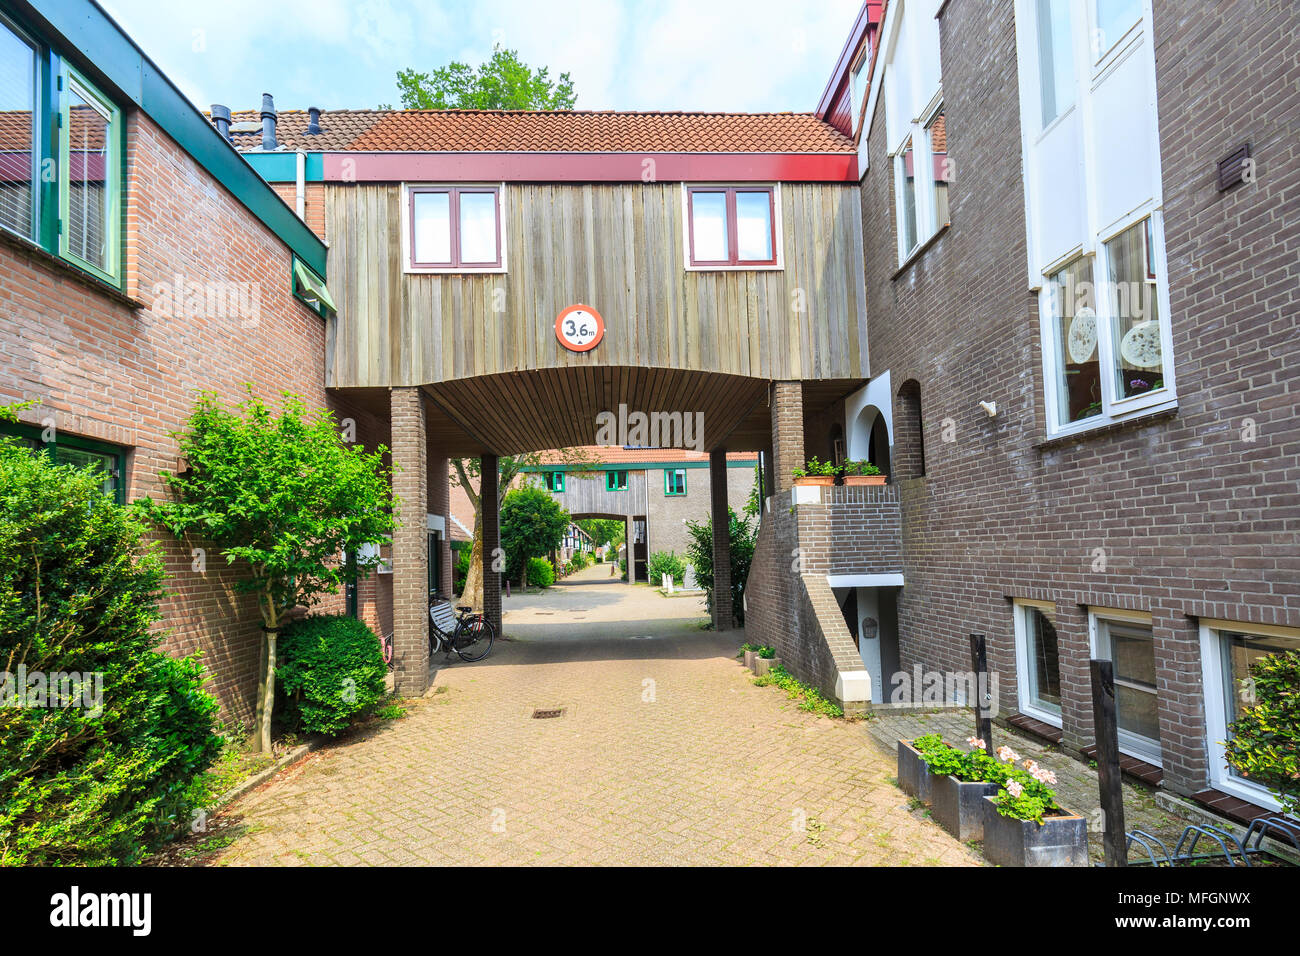 Modern style build residential wooden passageway structure building in a street with homes and houses with a height limt sign